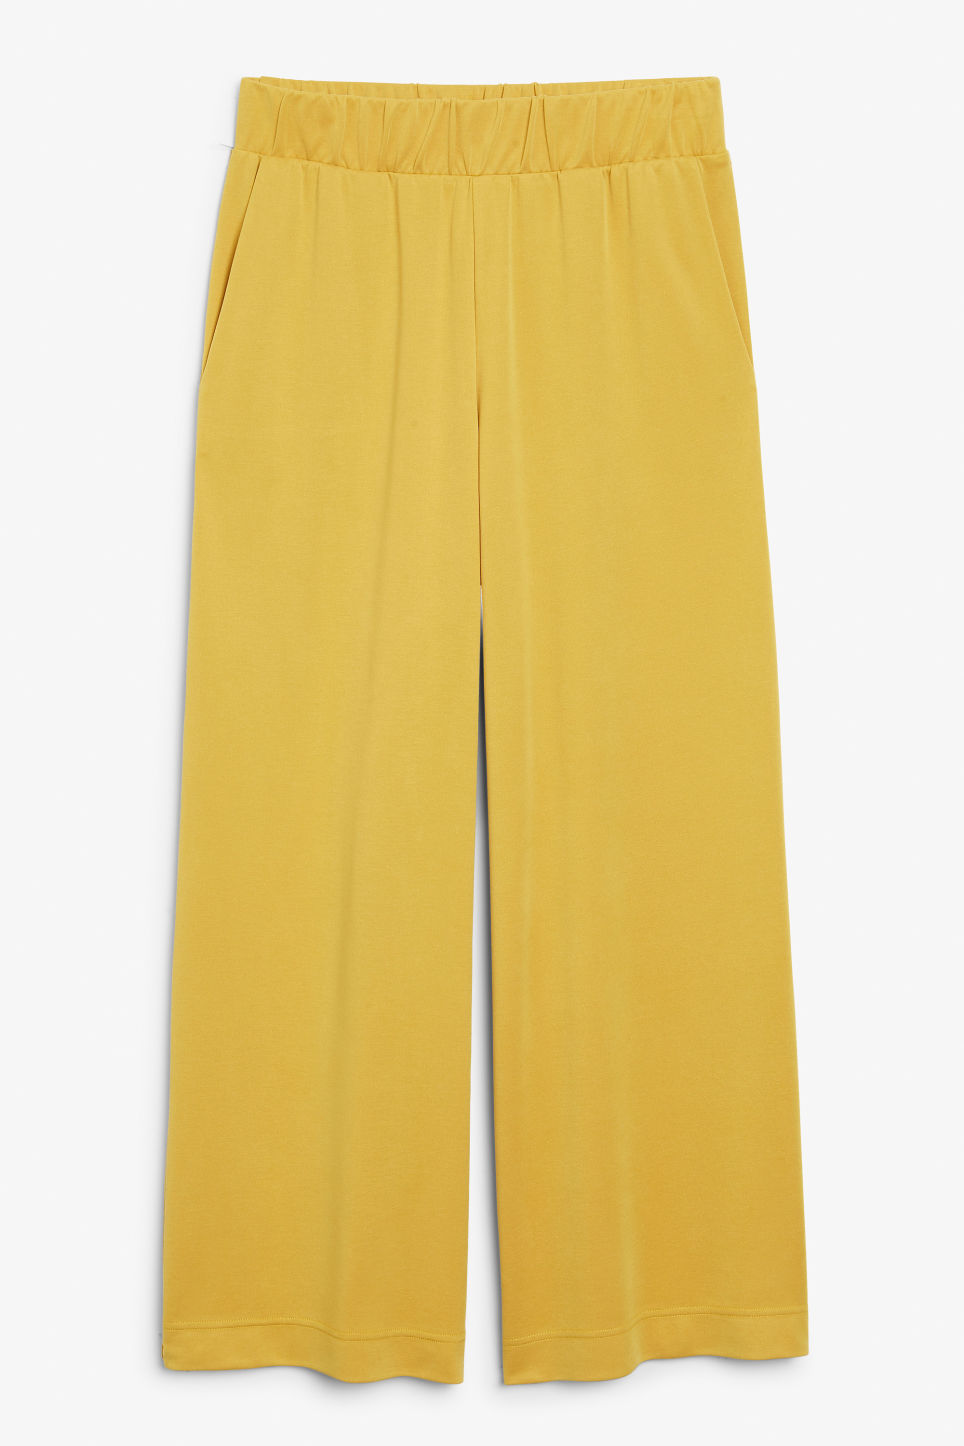 cb213f6604f Super-soft trousers - Sunflowers at dusk - Trousers   shorts - Monki